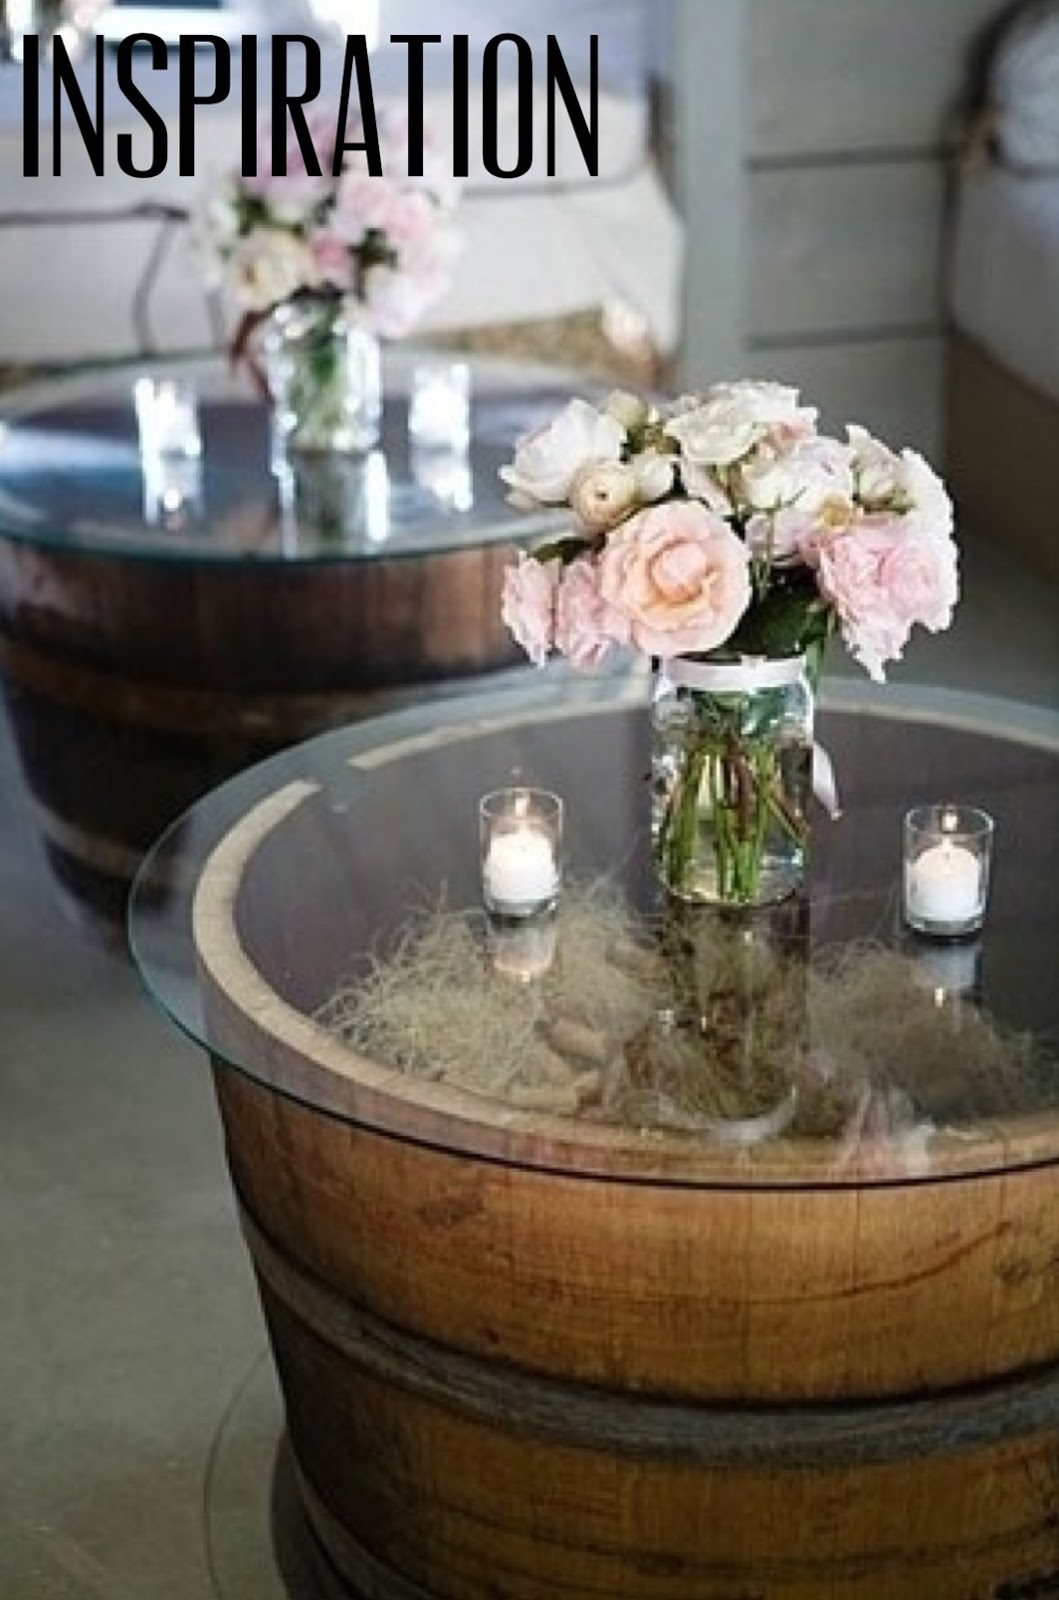 Diy wine barrel table - It Adds So Much Character To The Living Room And Isn T As Chunky As The Other Table I Couldn T Be Happier Except When I Think About All The Wine I Get To